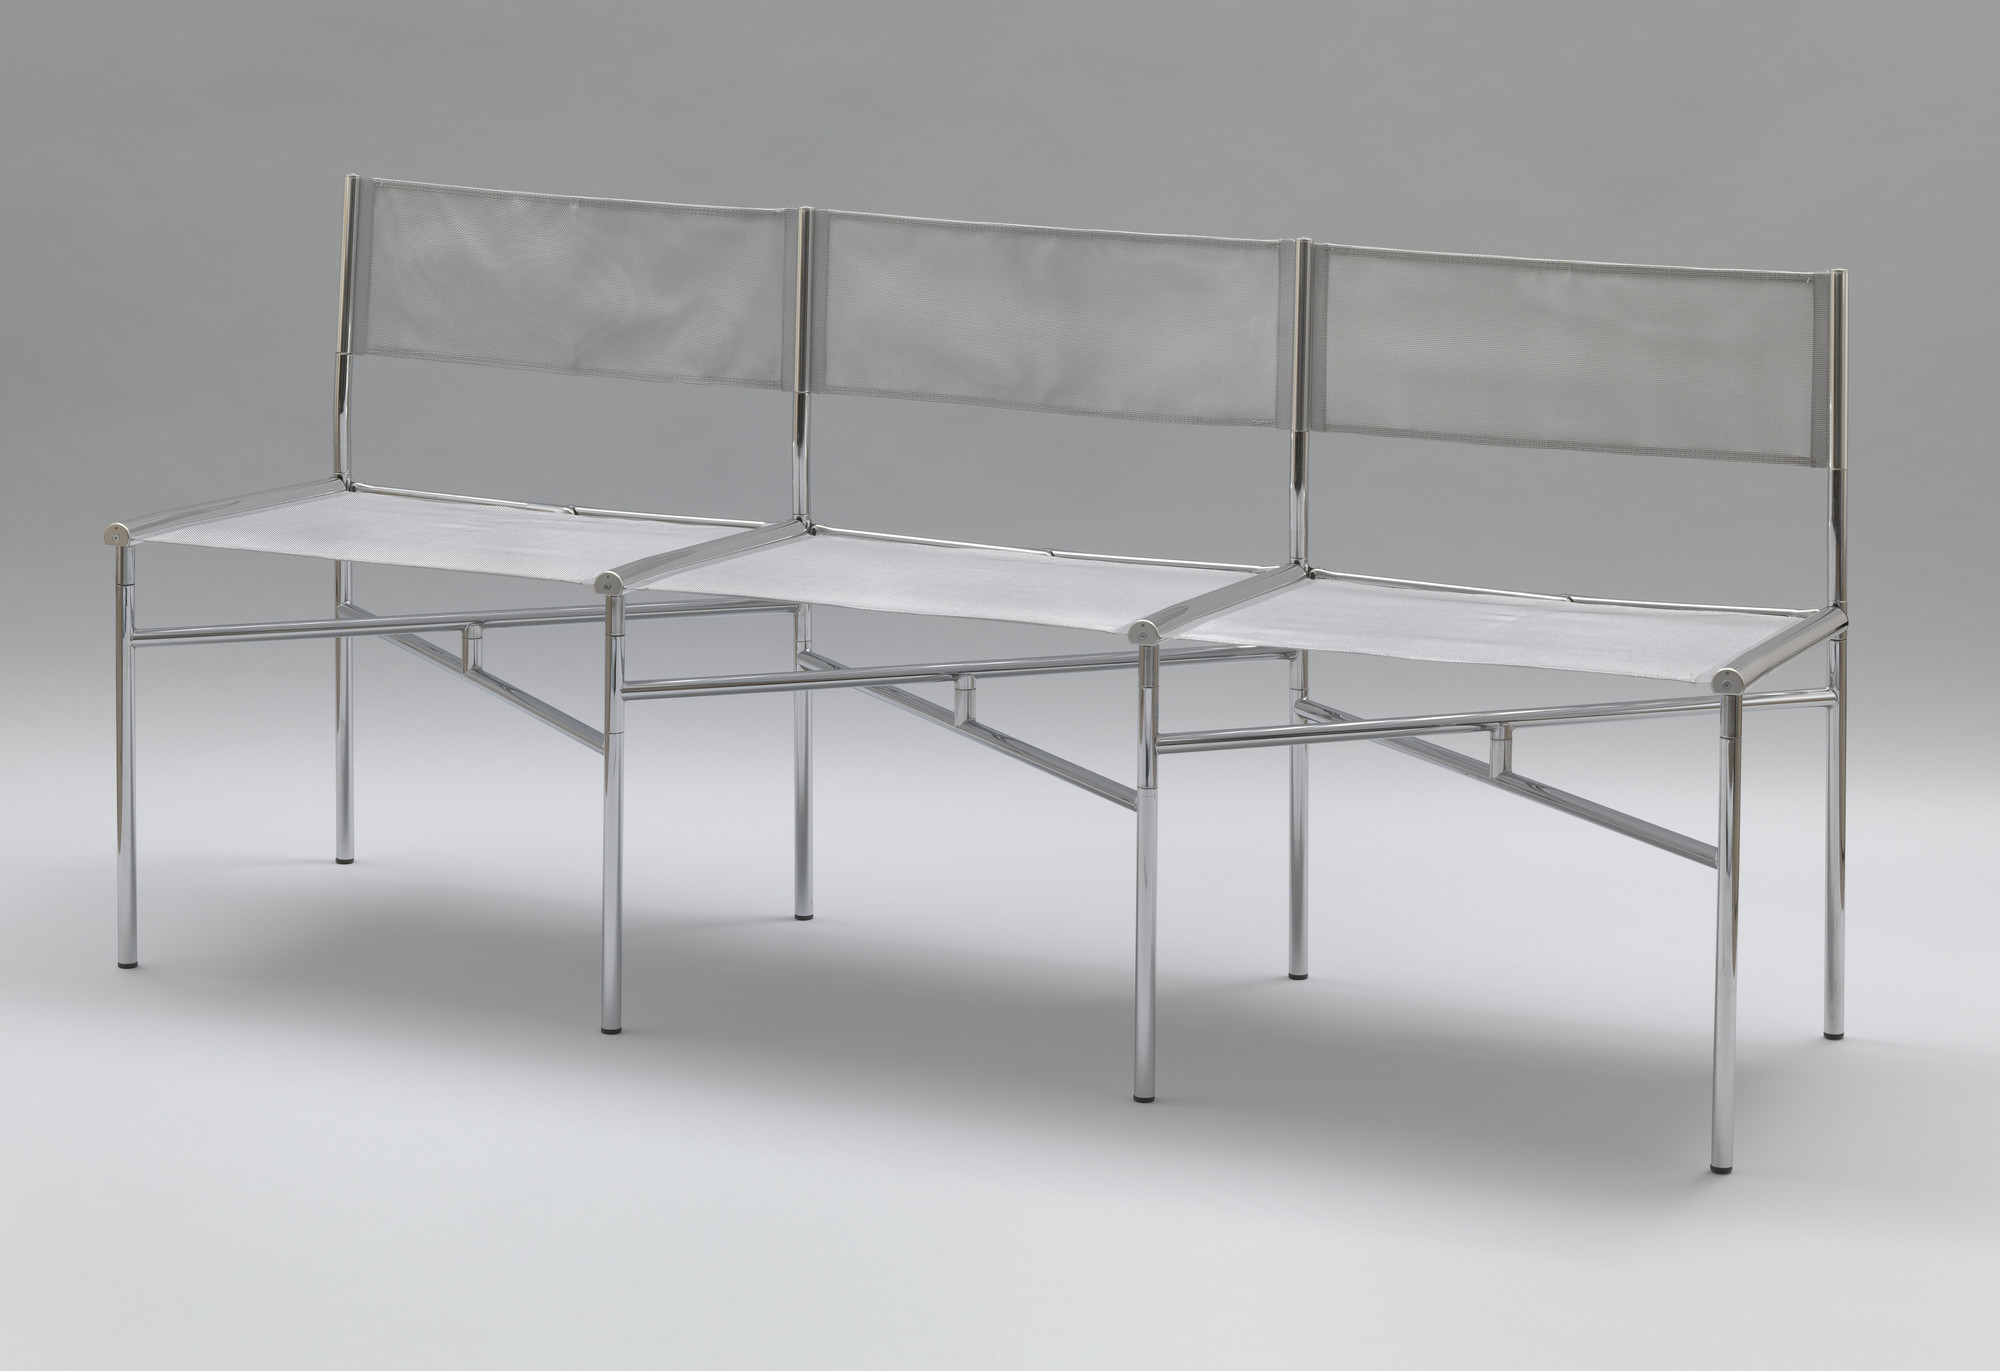 Laurence Humier. Meeting Chairs. 2007-2008